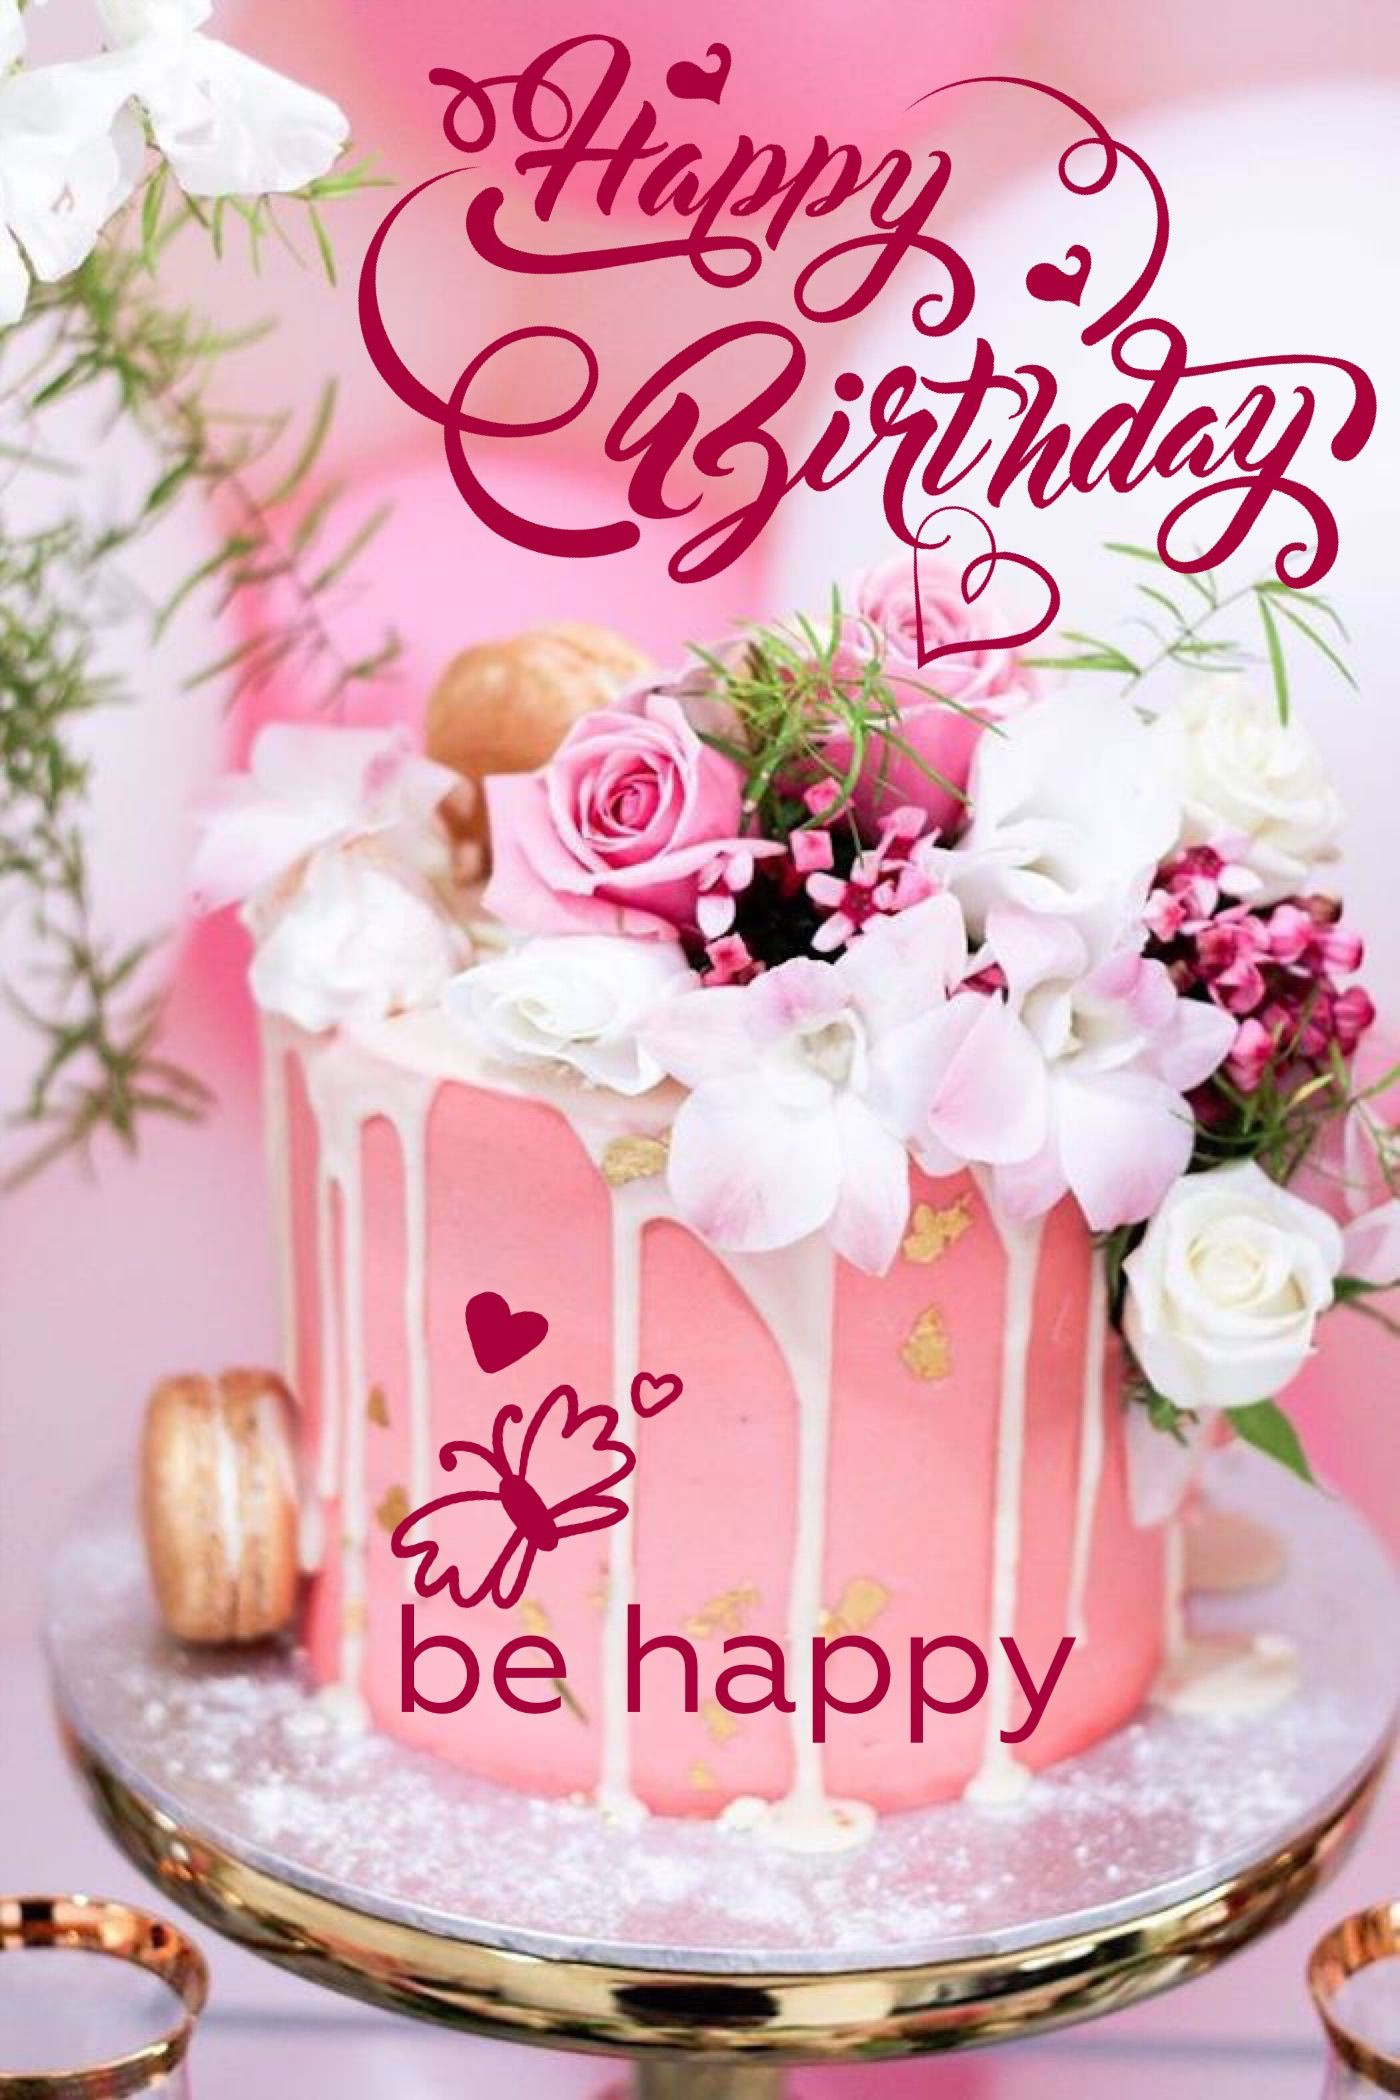 Best ideas about Birthday Wishes Images . Save or Pin Happy Birthday Happy Birthday Now.